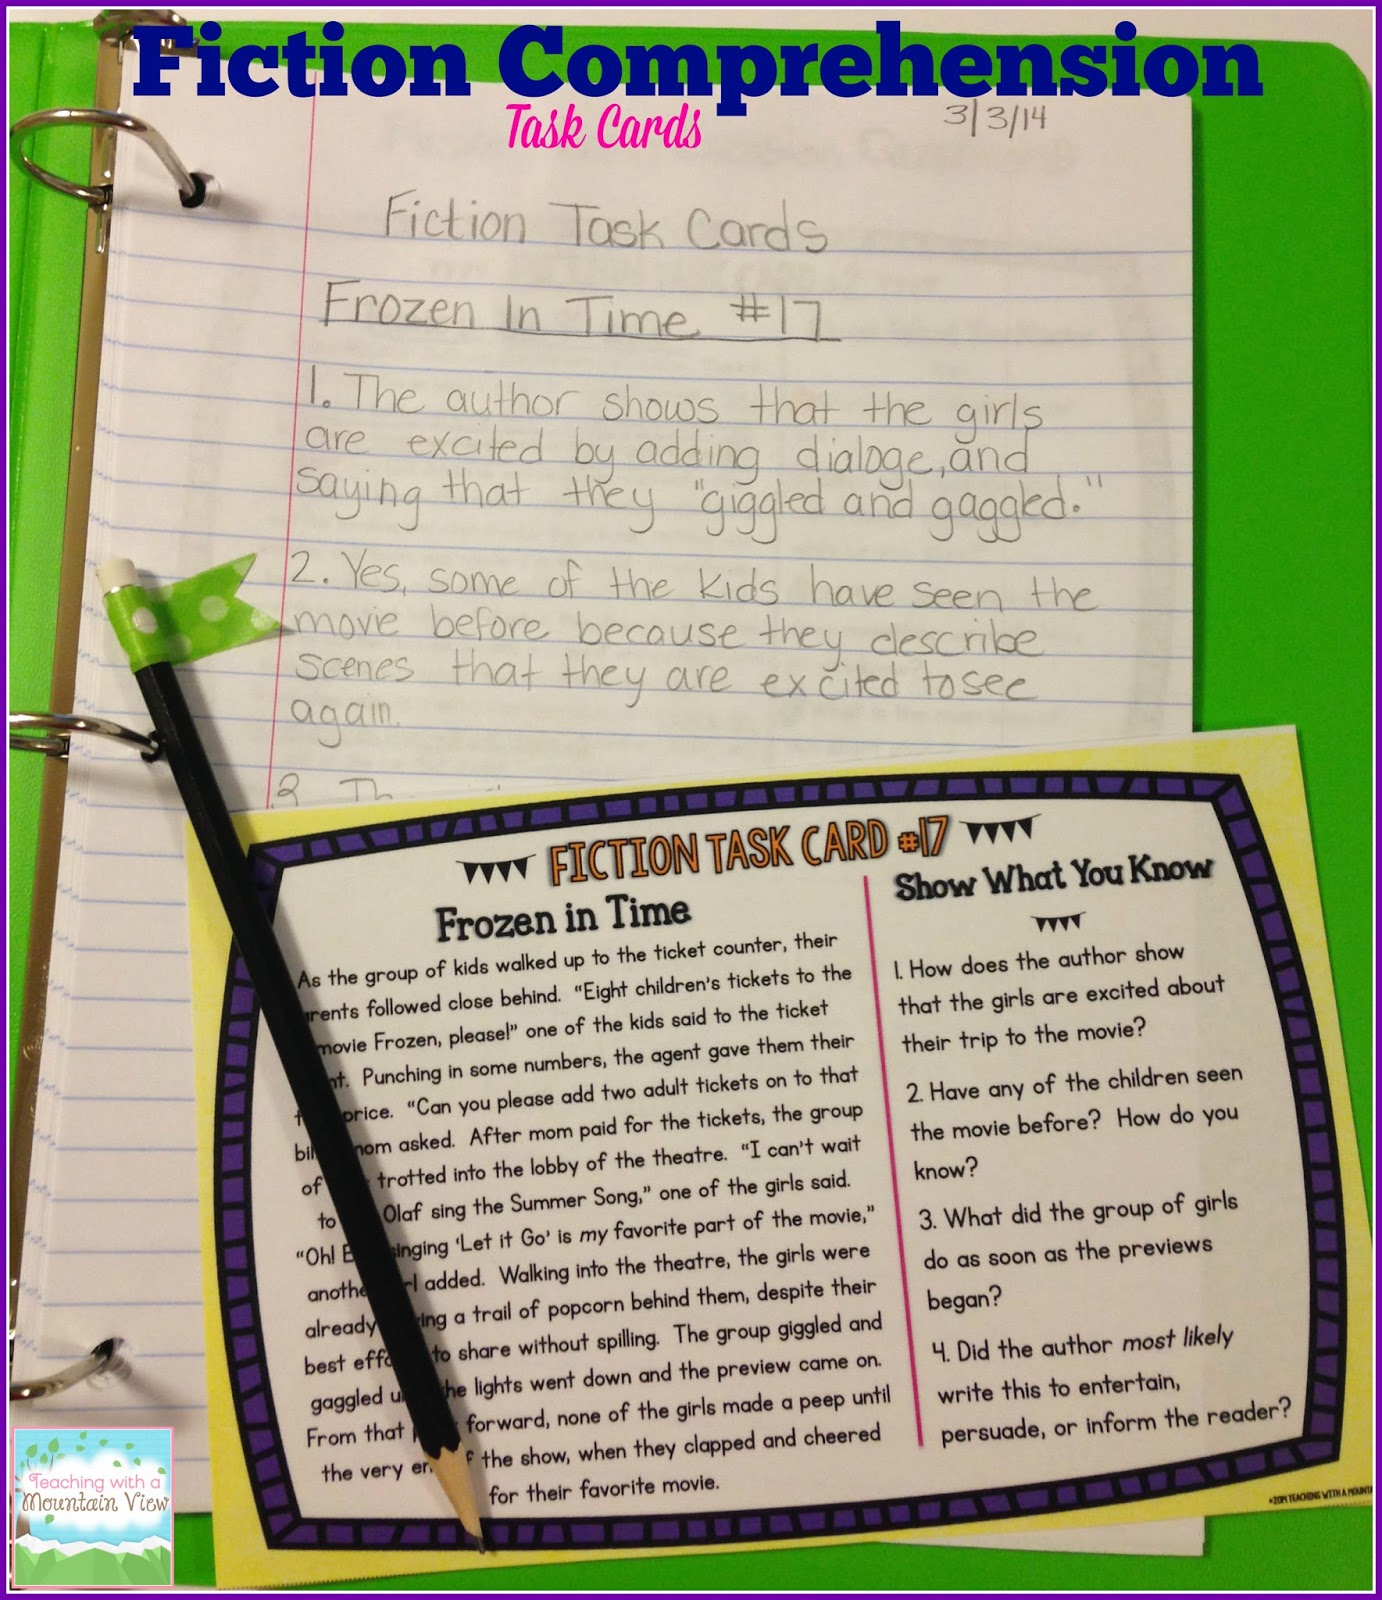 Teaching With A Mountain View: Fiction Comprehension